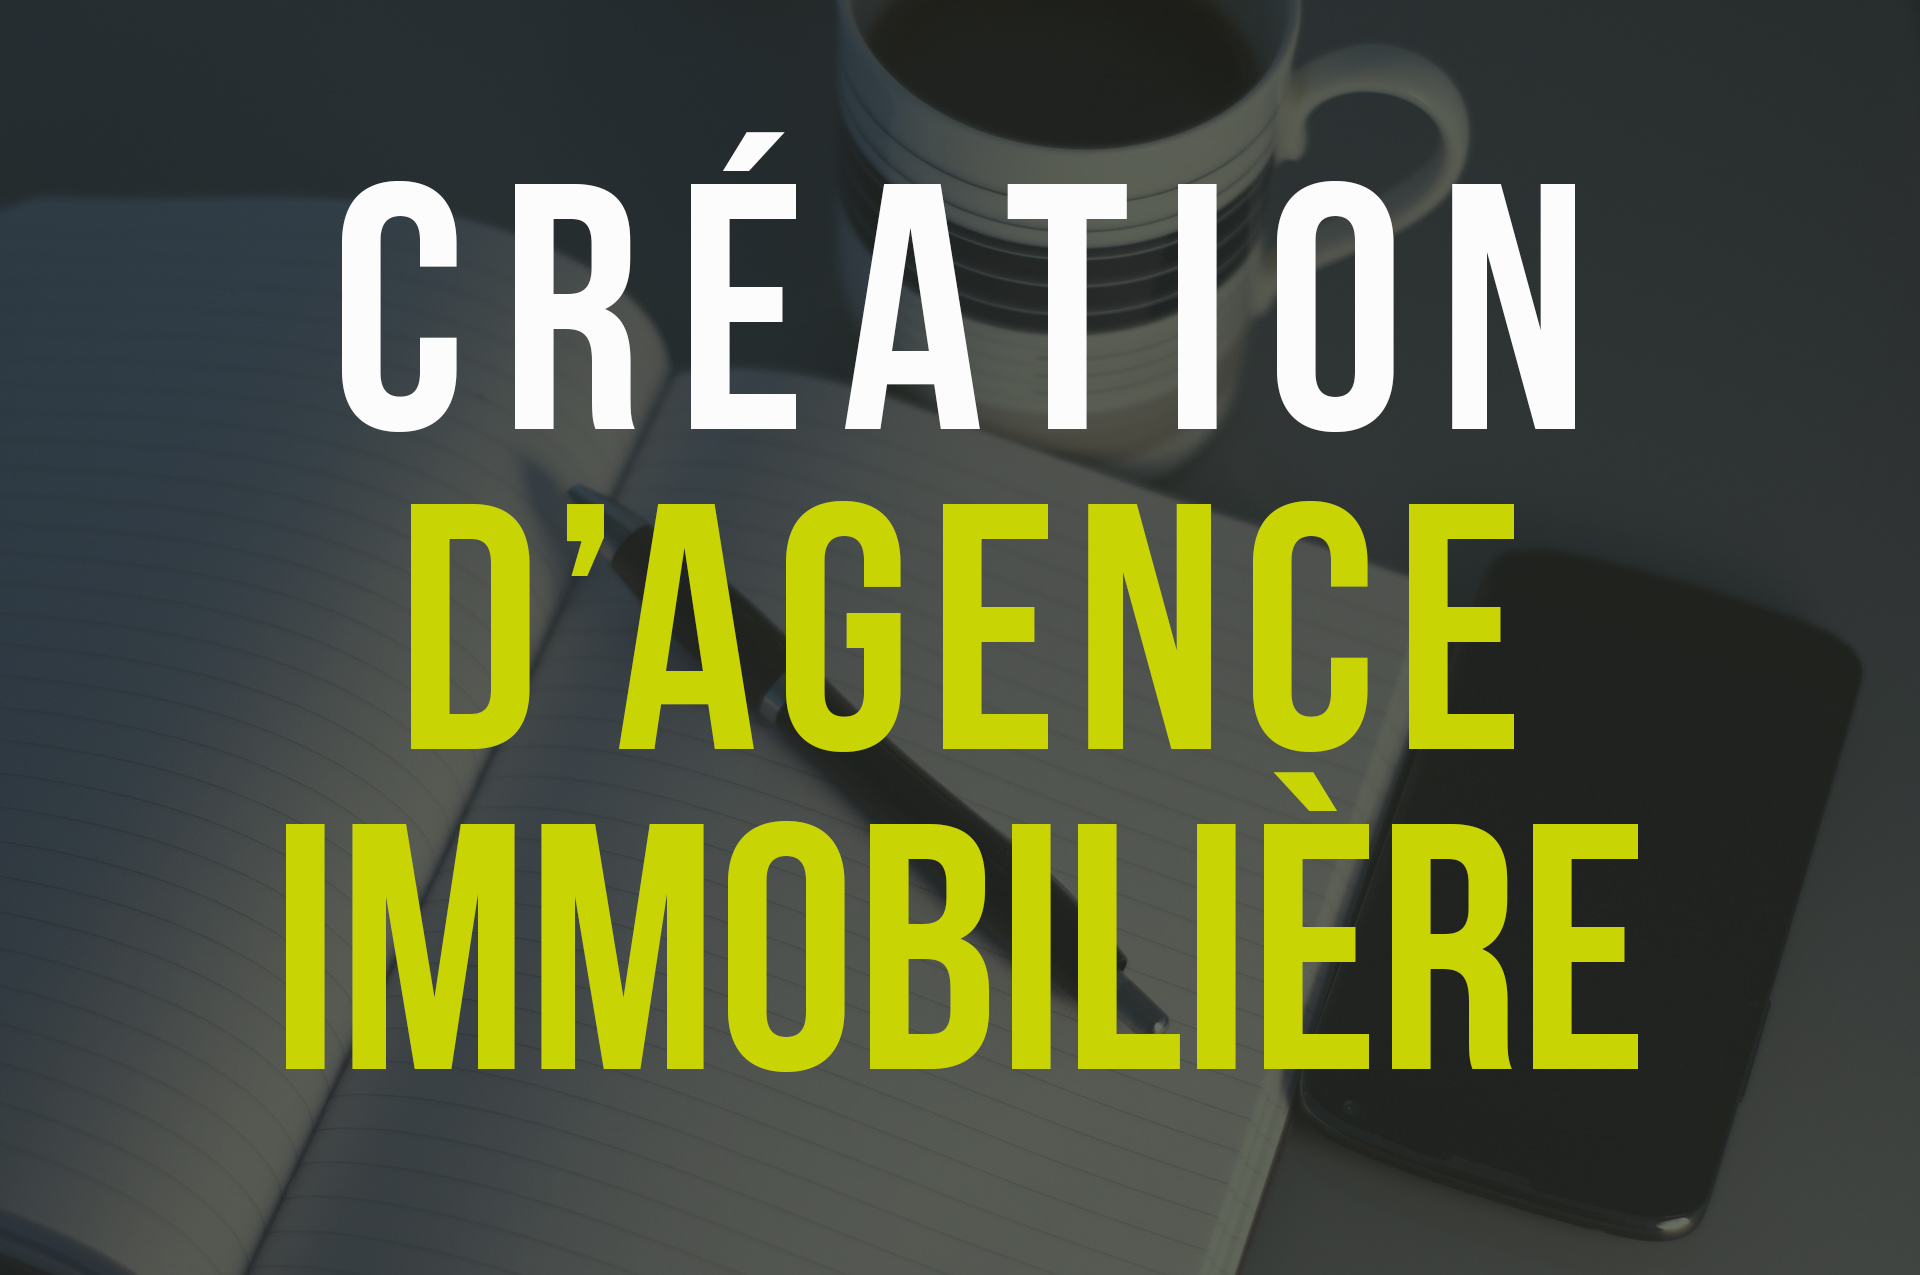 Cr ation d 39 agence immobili re on vous dit tout le for Tout les agence immobiliere